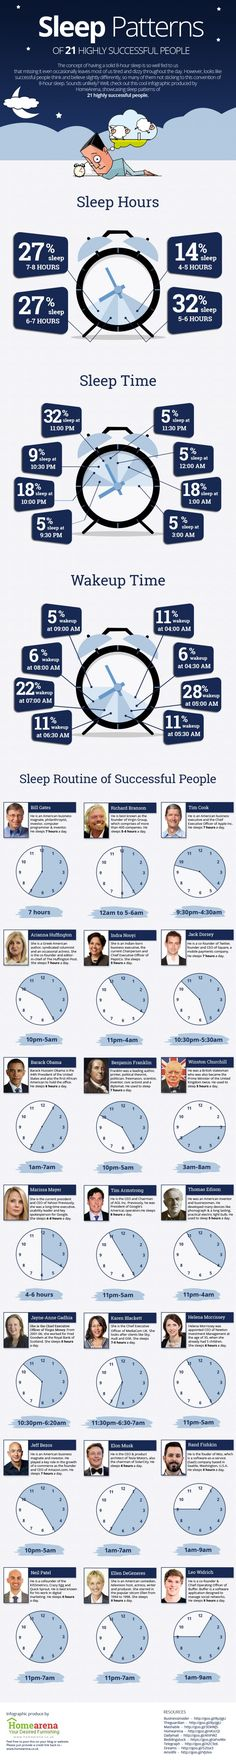 Research shows it's better to sleep briefly than to sleep badly. Here's how 21 entrepreneurs do it.